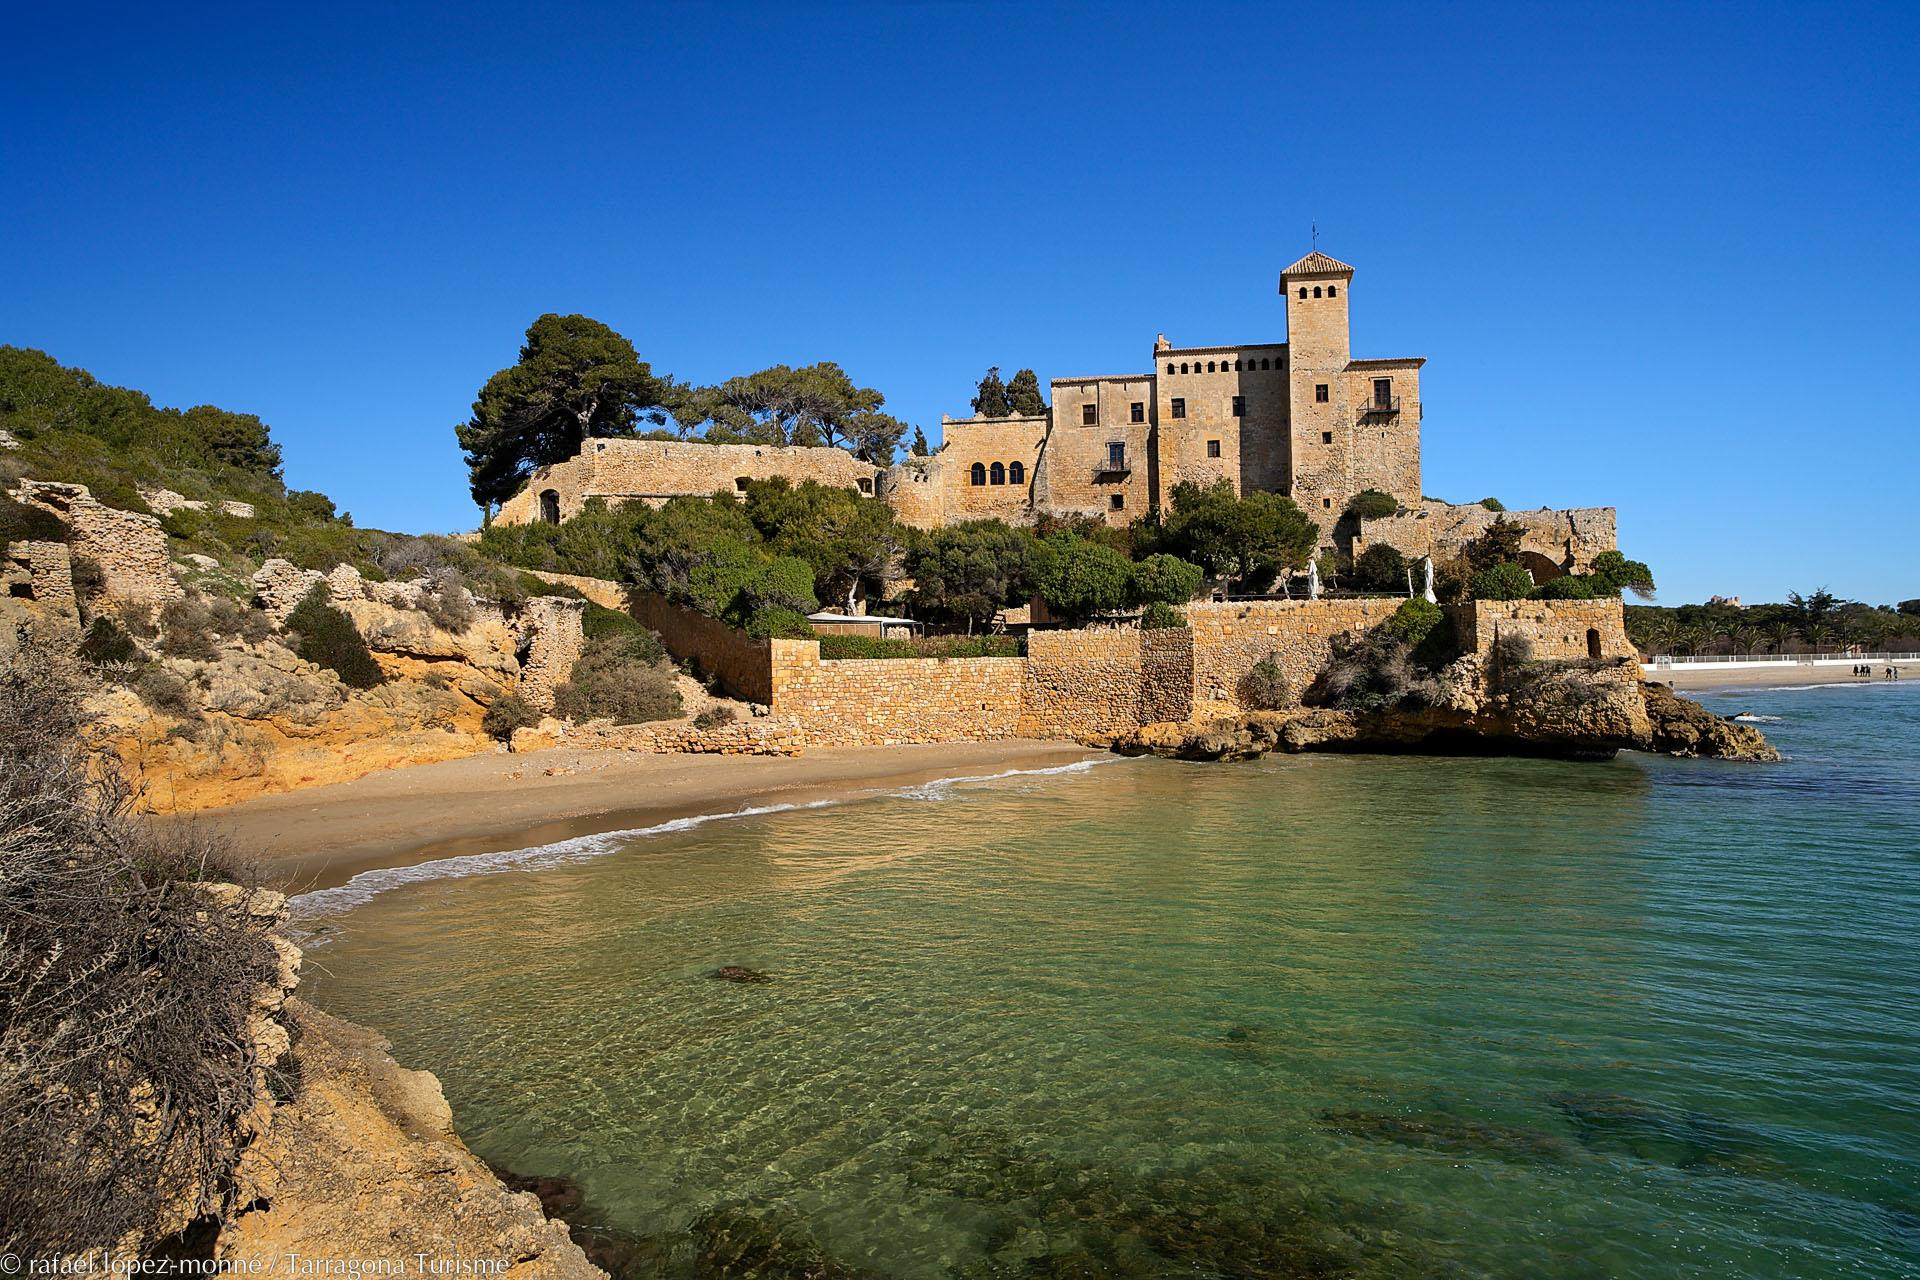 Another major draw for visitors to Tarragona is the city's 15-kilometre coastline, dotted with beaches and coves with crystalline waters. Pictured here is Jovera Cove with its Romanesque and Gothic castle.  – © Rafael López-Monné